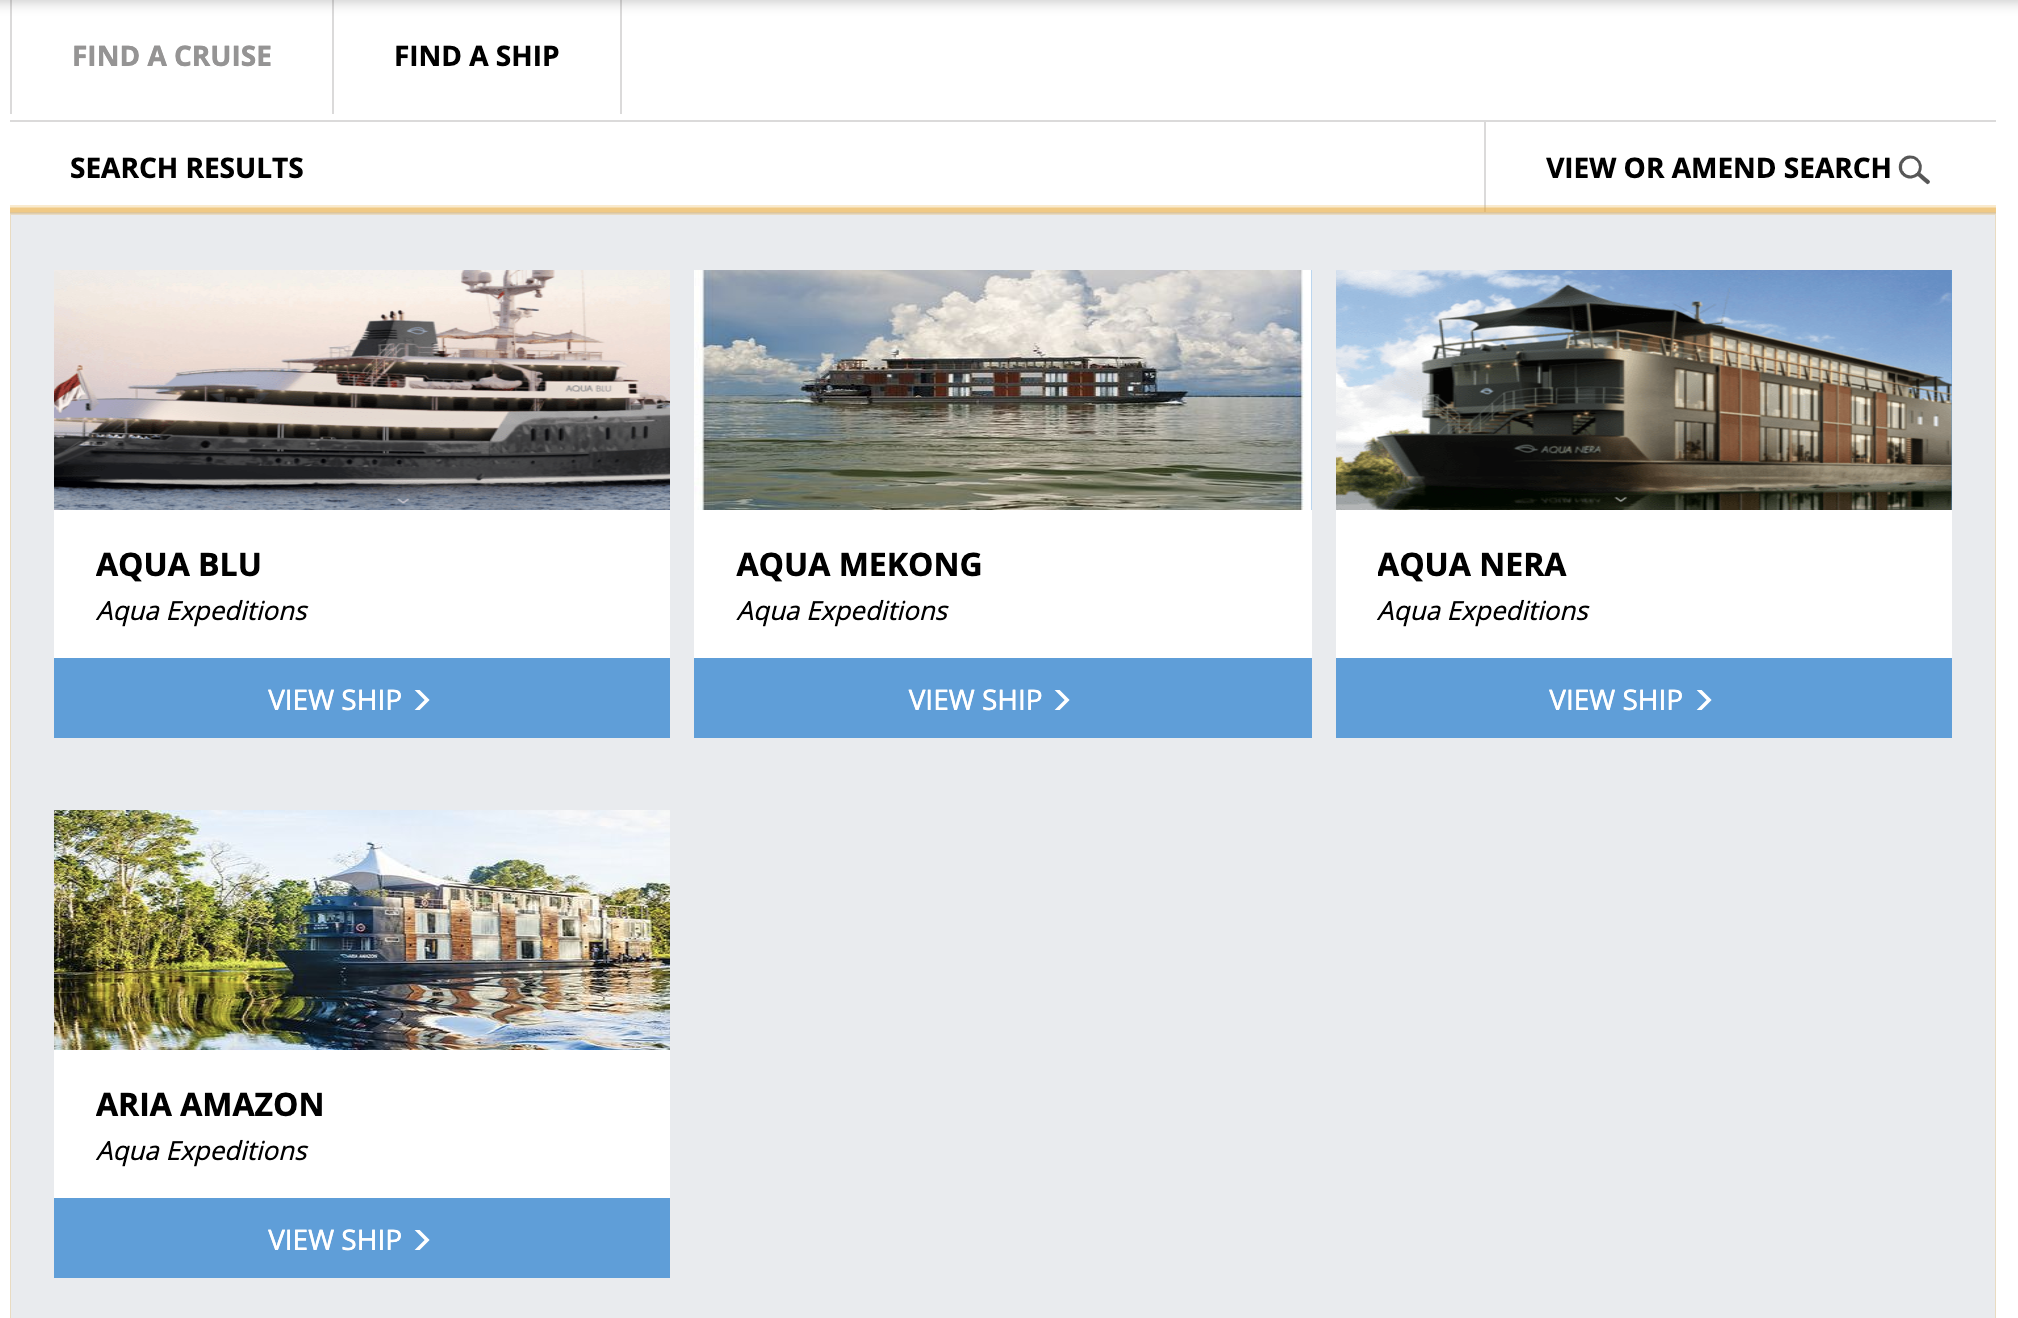 Aqua Expeditions ships on the Widgety Cruise Search.